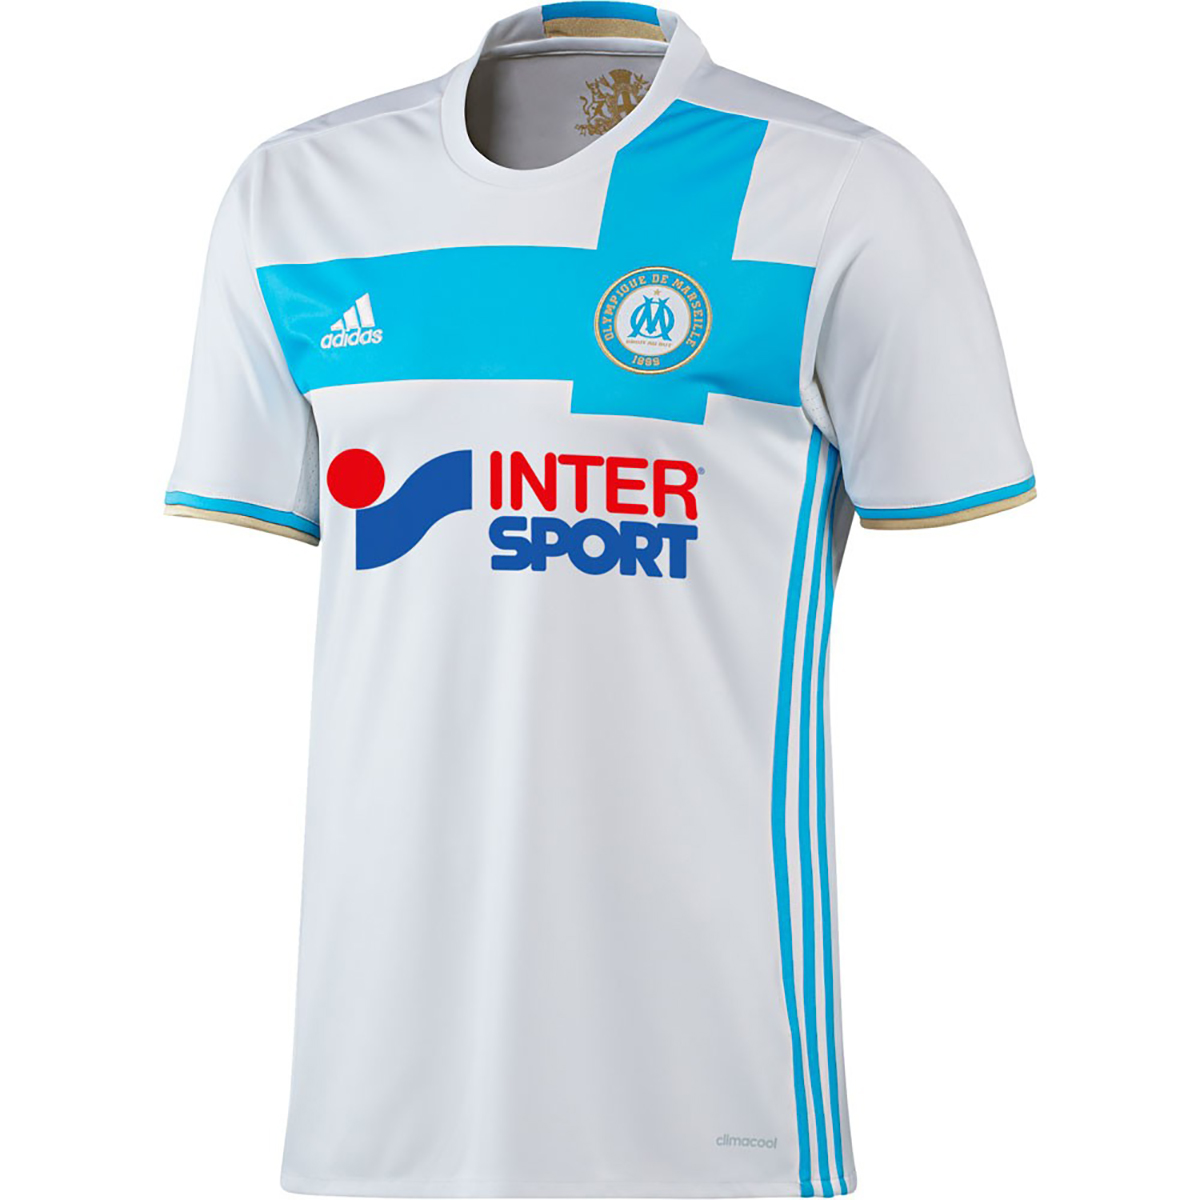 478accc34 adidas Olympique Marseille 2016-17 Home Replica Jersey - Soccer Shop  Football Clubs Merchandise - Superfanas.lt